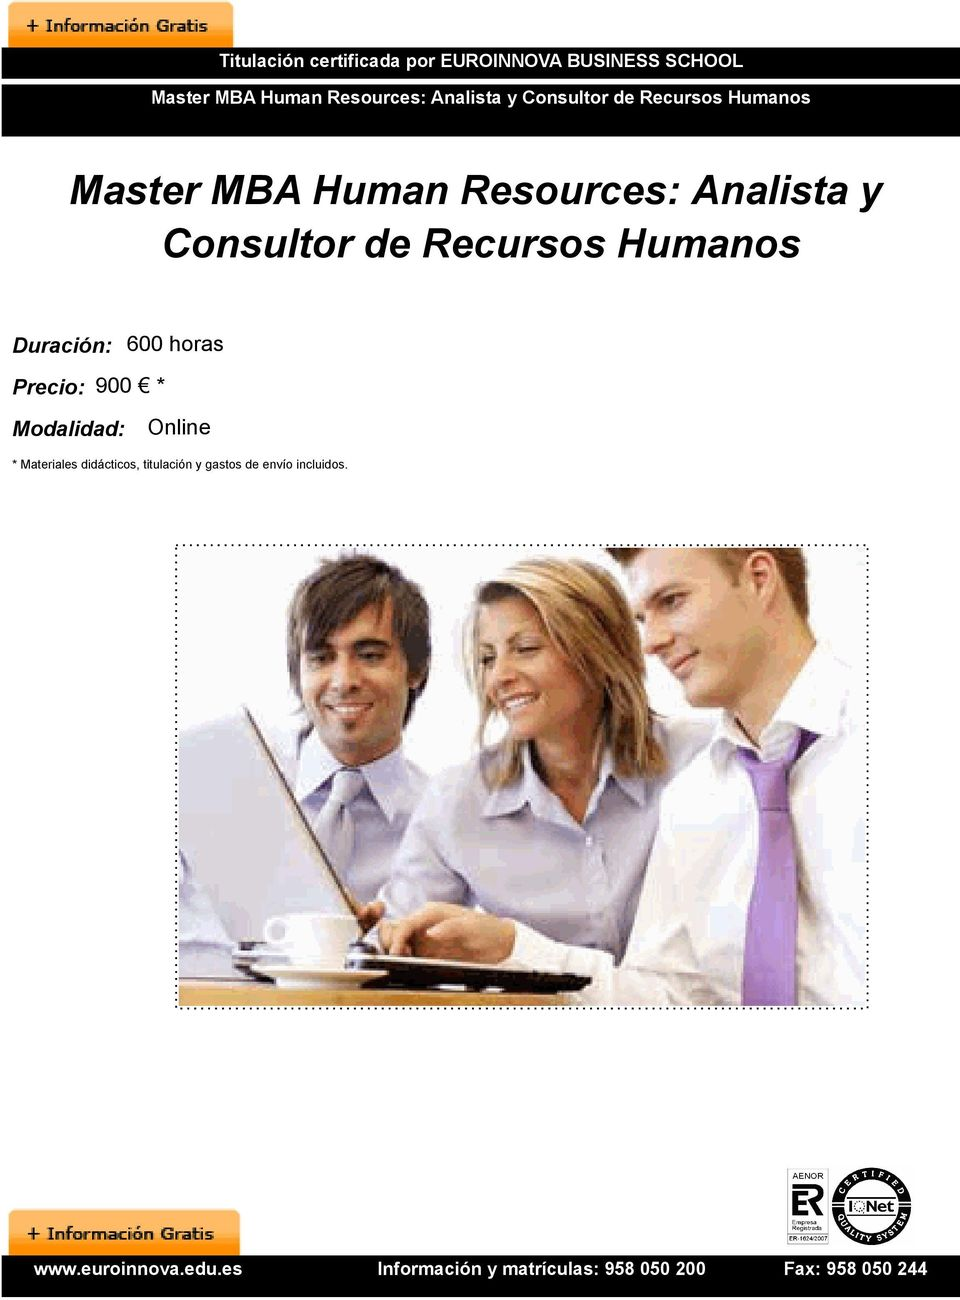 Resources: Analista y Consultor de Recursos Humanos Duración: 600 horas